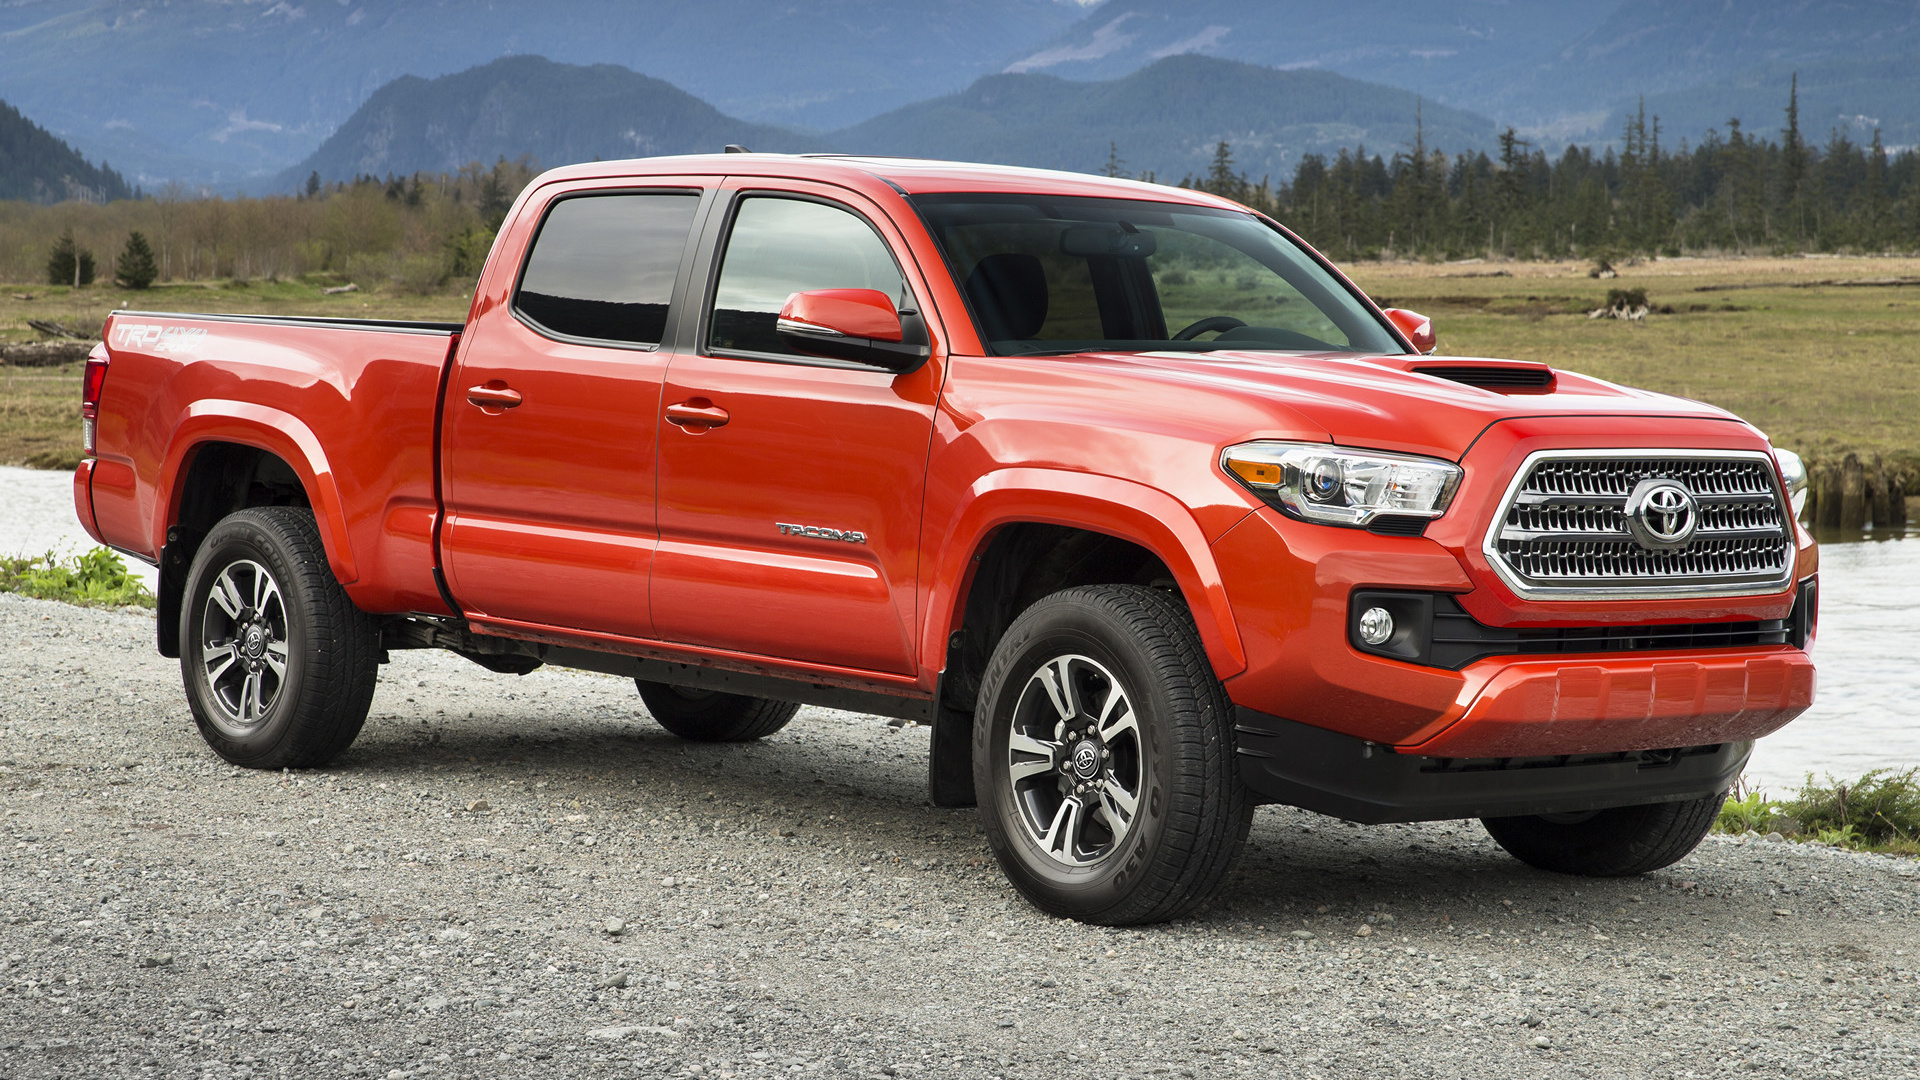 2016 Toyota Tacoma Access Cab >> 2016 Toyota Tacoma TRD Sport Double Cab - Wallpapers and ...